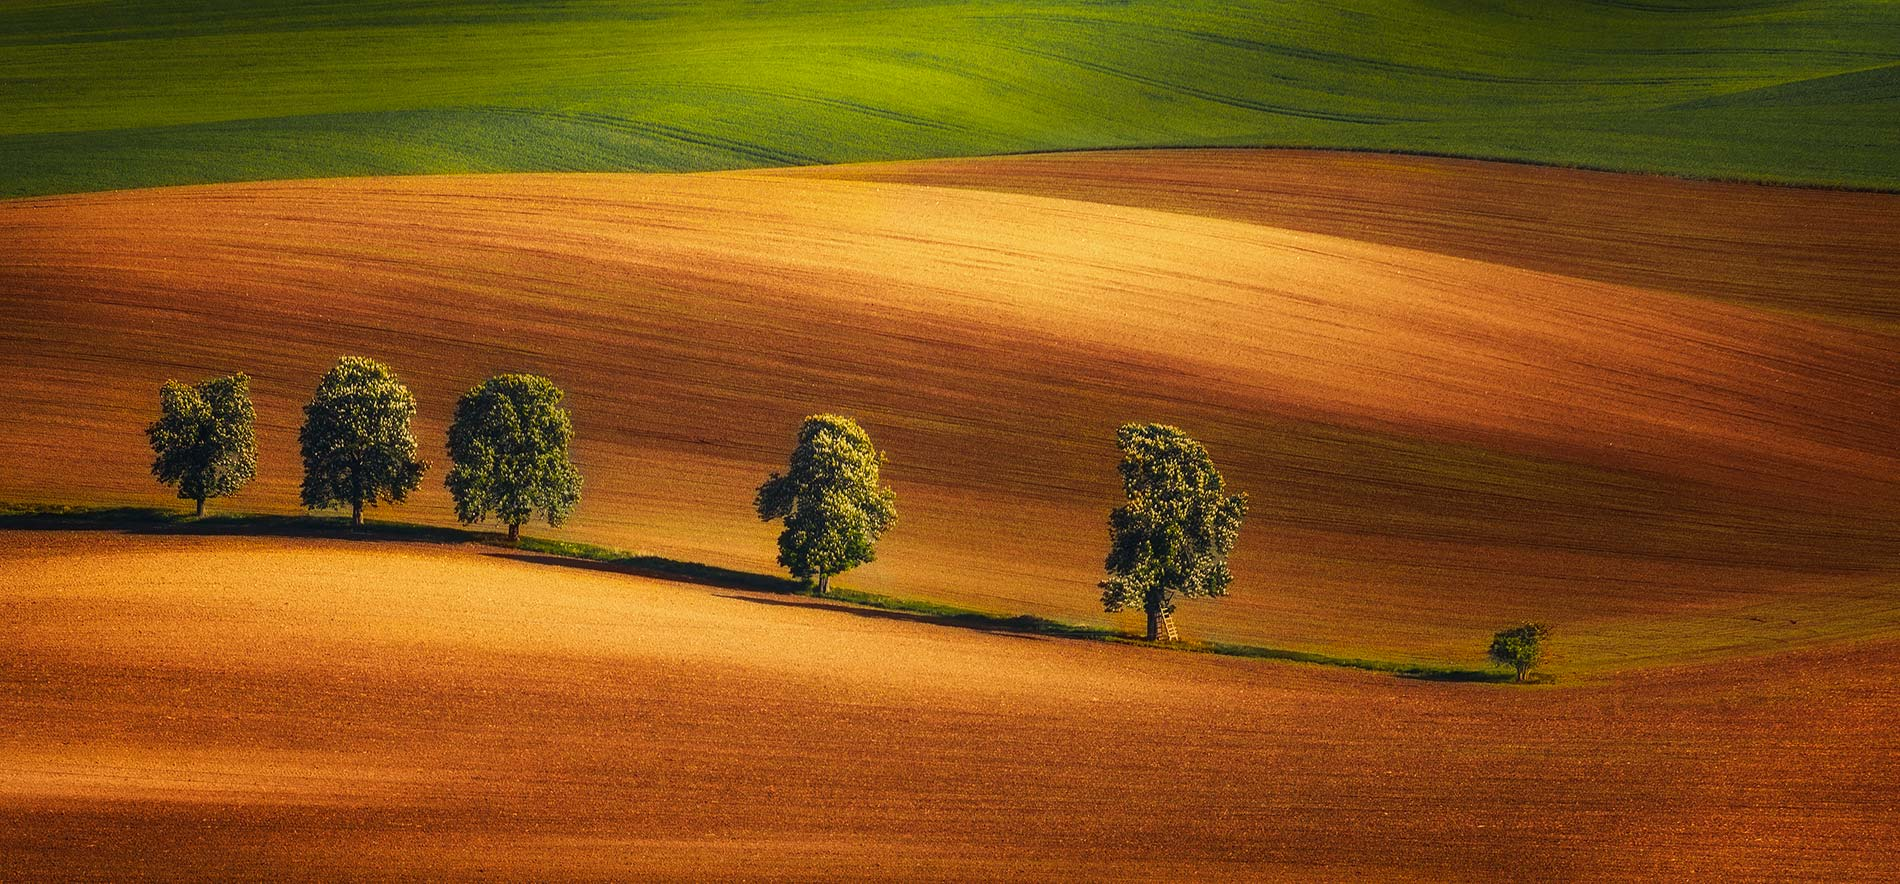 moravian tuscany photo tour - alley of trees, South moravia, czech republic